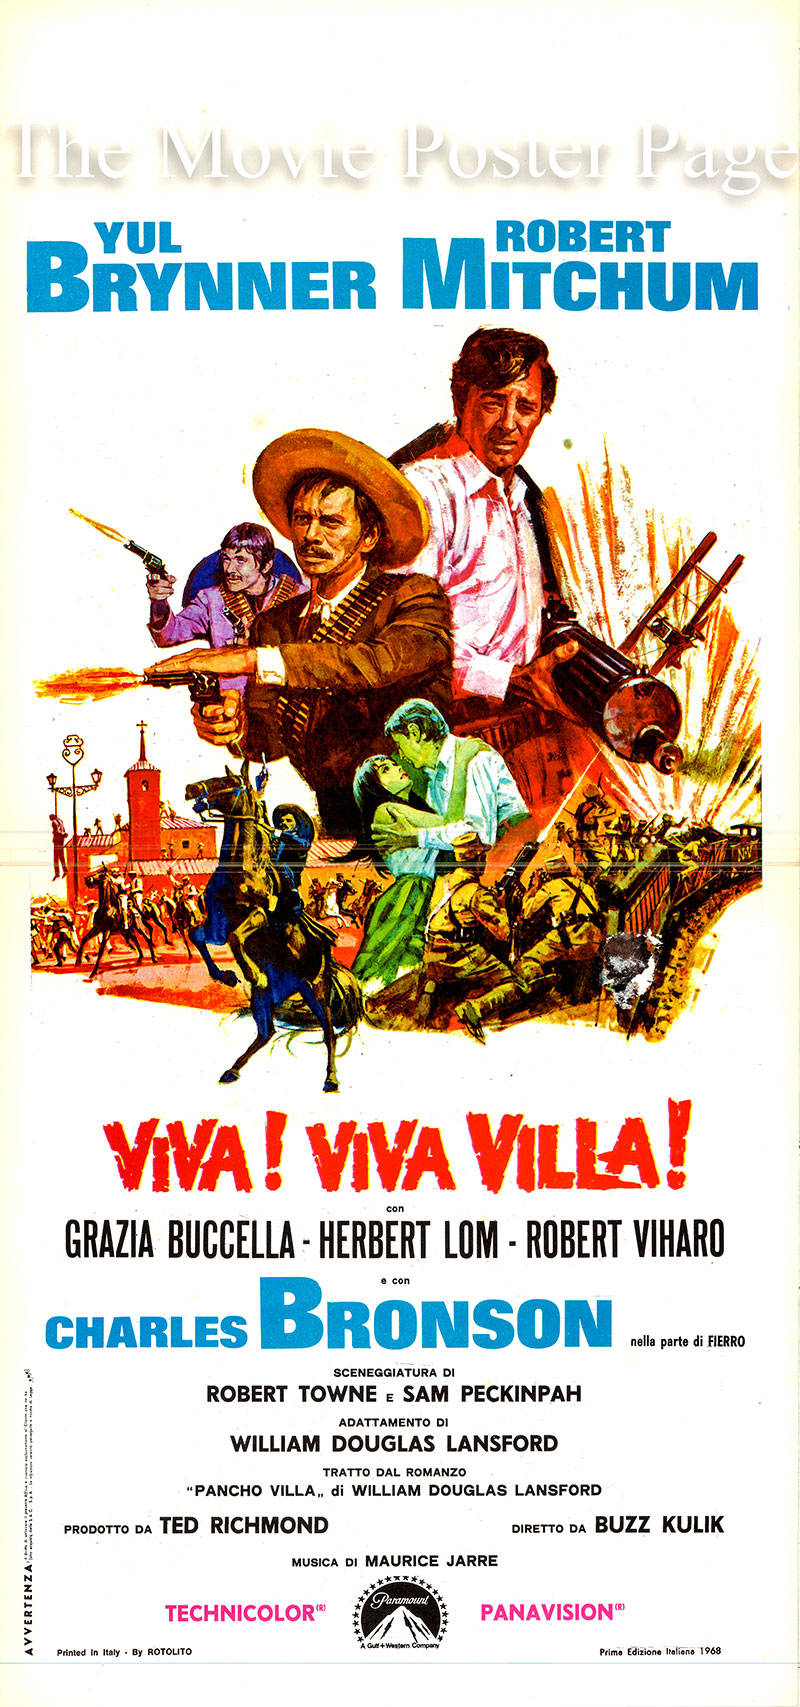 Pictured is an Italian locandina poster for the 1968 Buzz Kulik film Villa Rides starring Robert Yul Brynner as Pancho Villa.